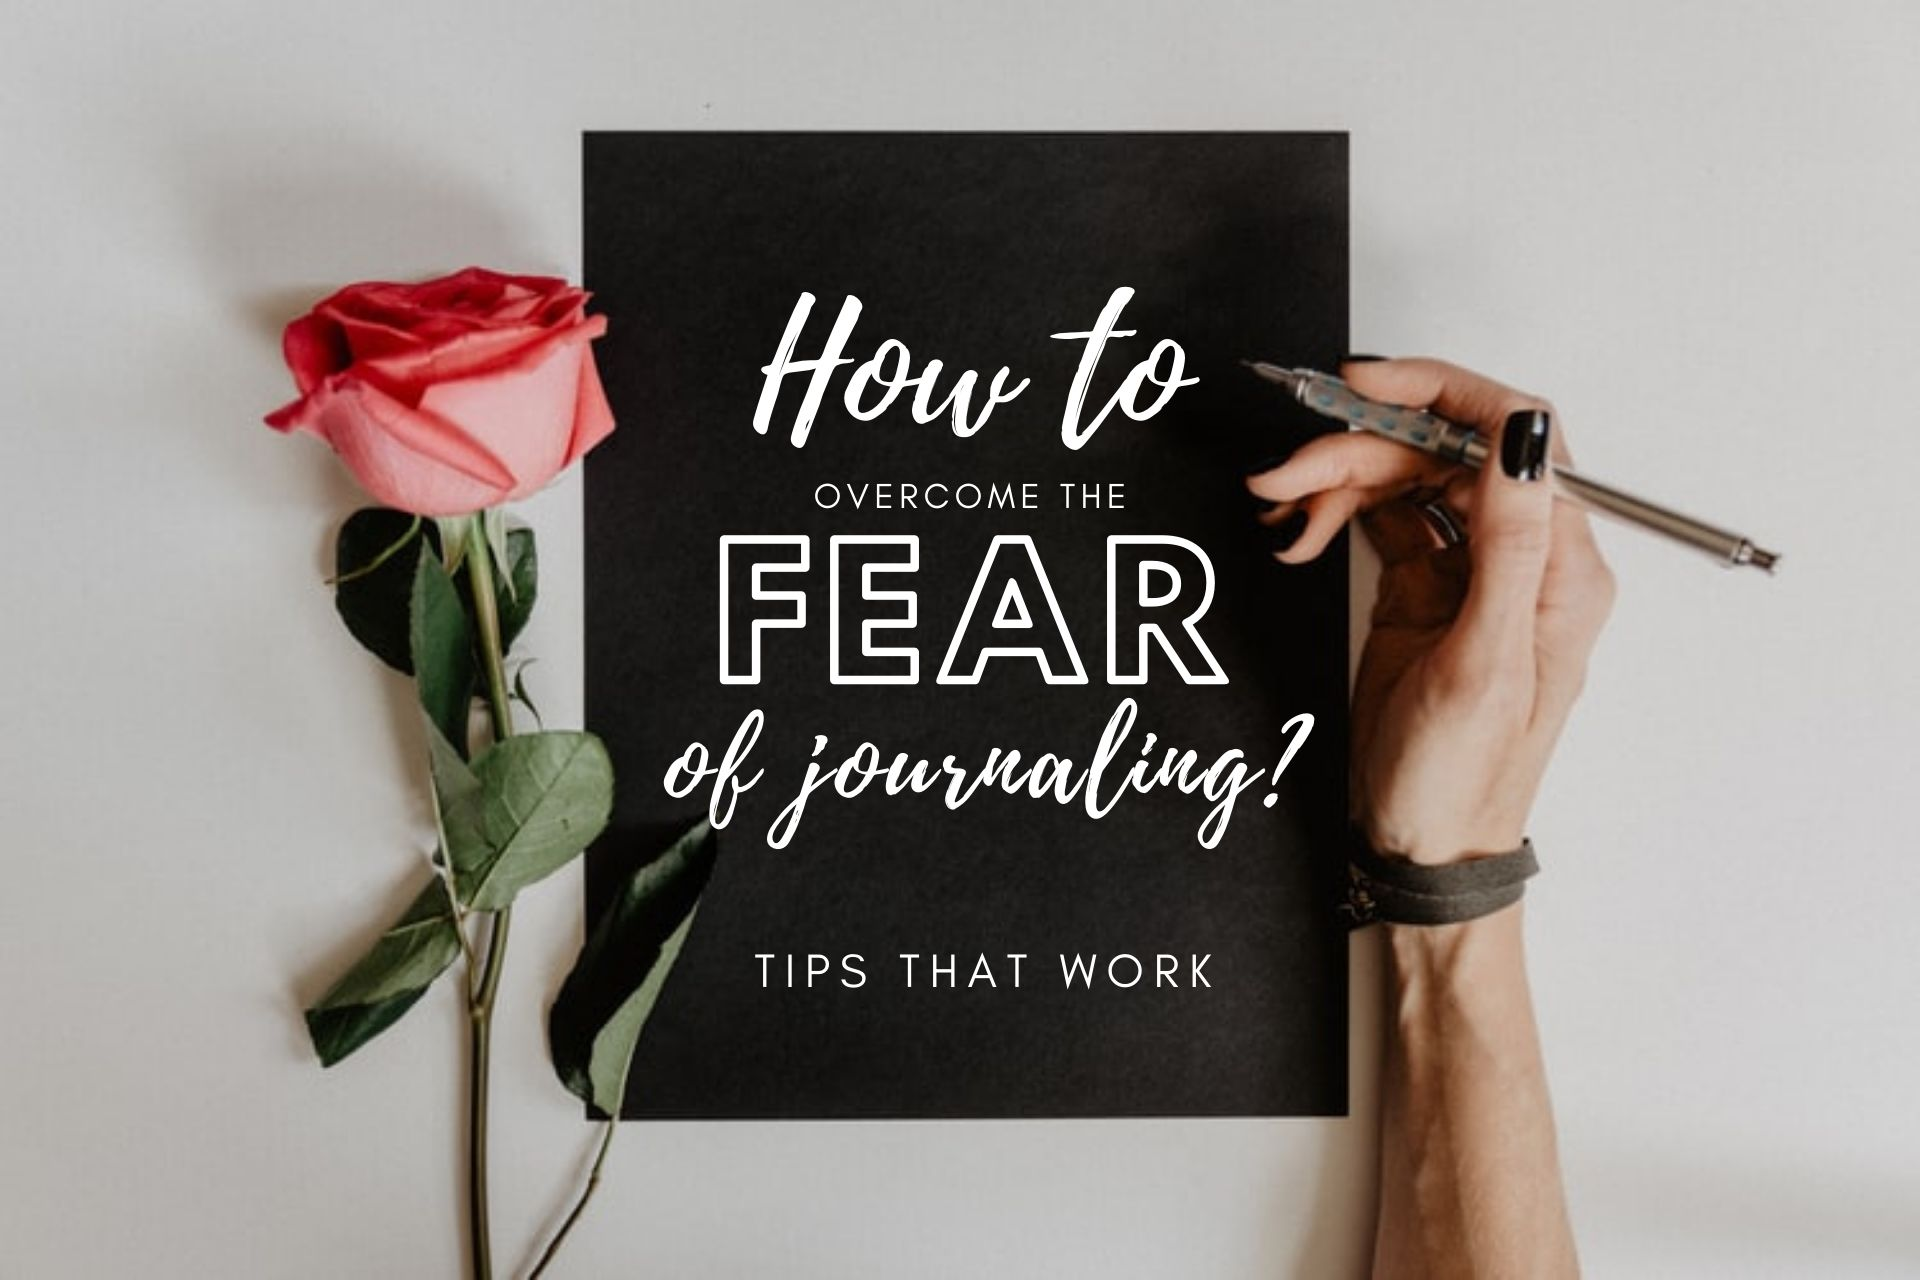 How to overcome fear of journaling